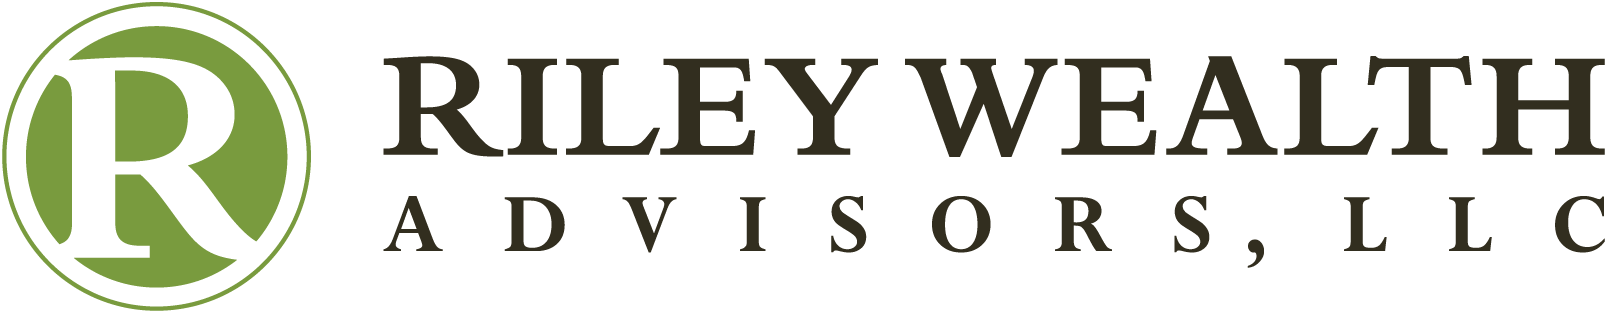 Riley Wealth Advisors